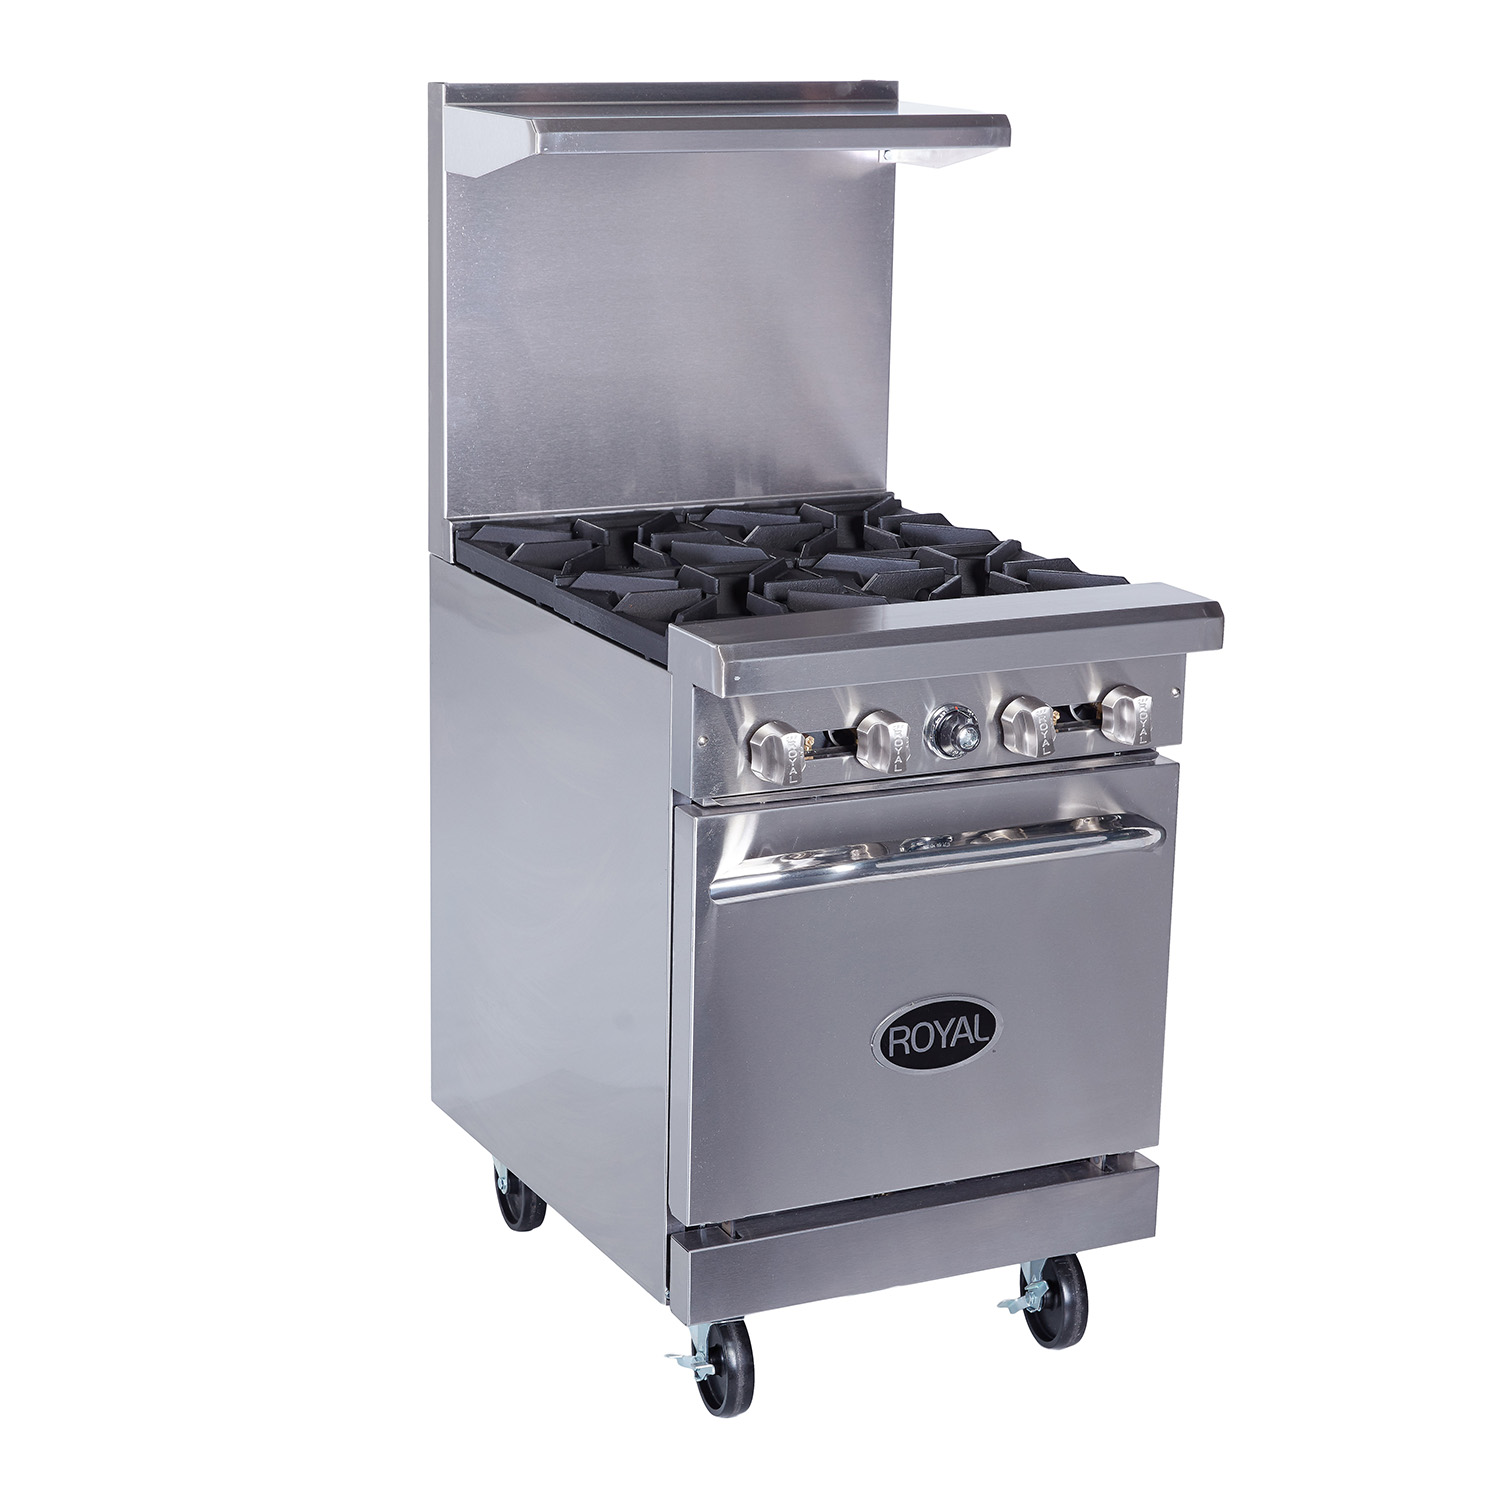 Royal Range Of California, 4 Burners Gas Ranges With Wide Oven